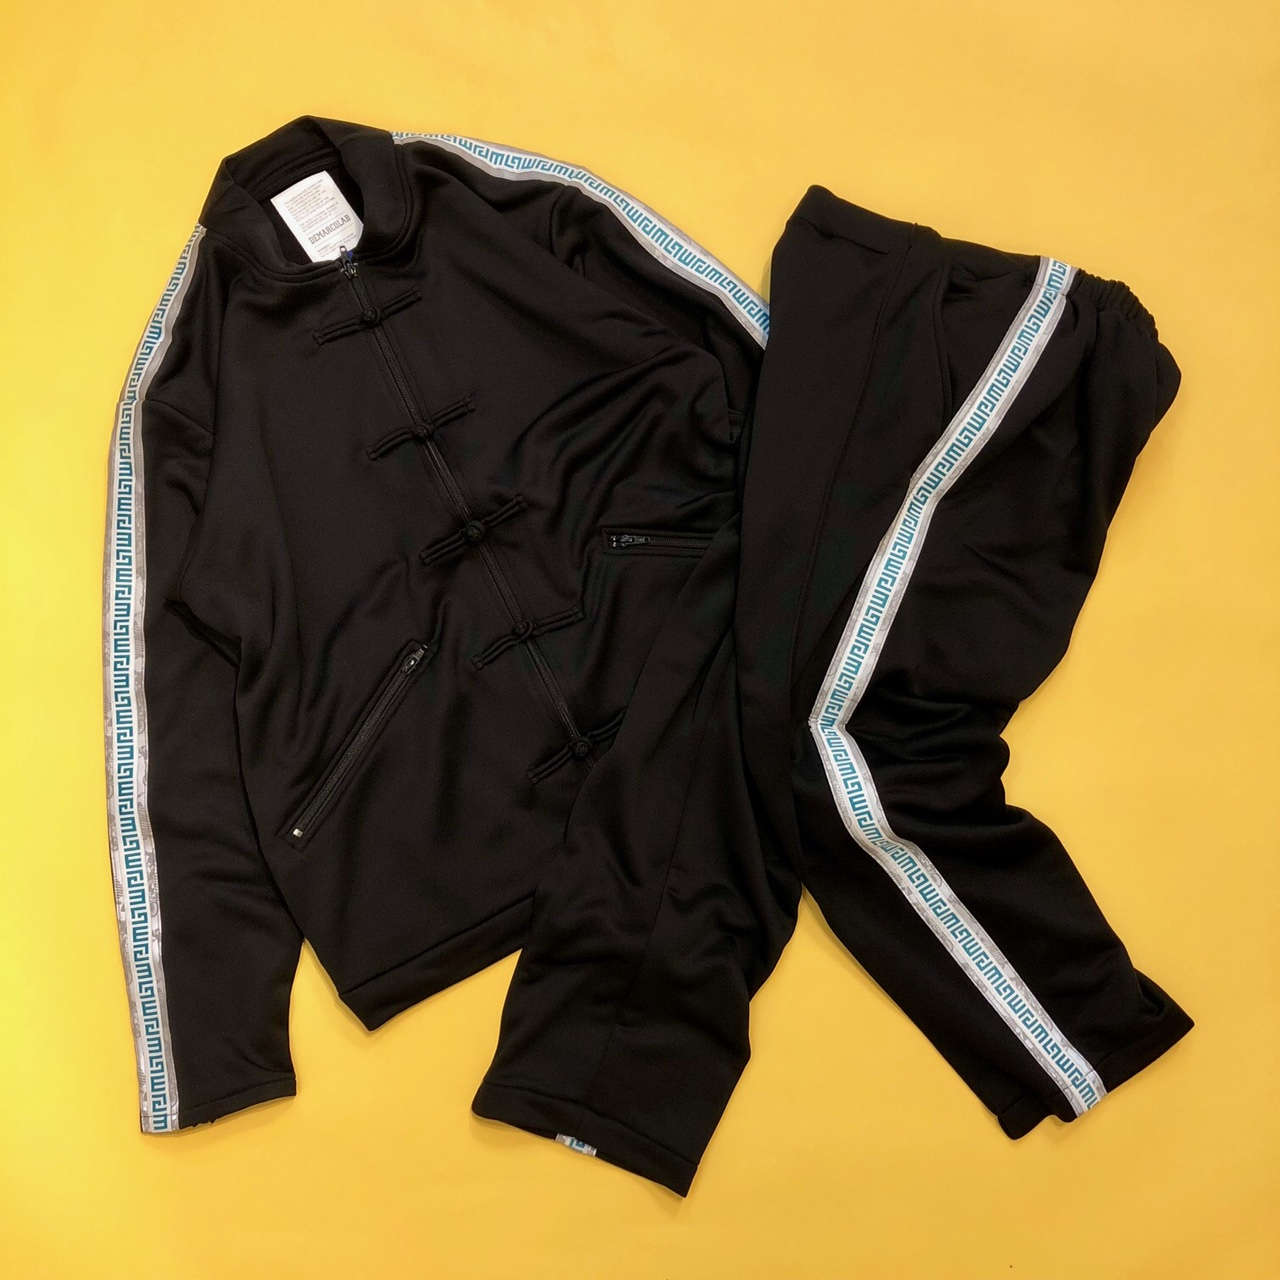 tracksuits_1